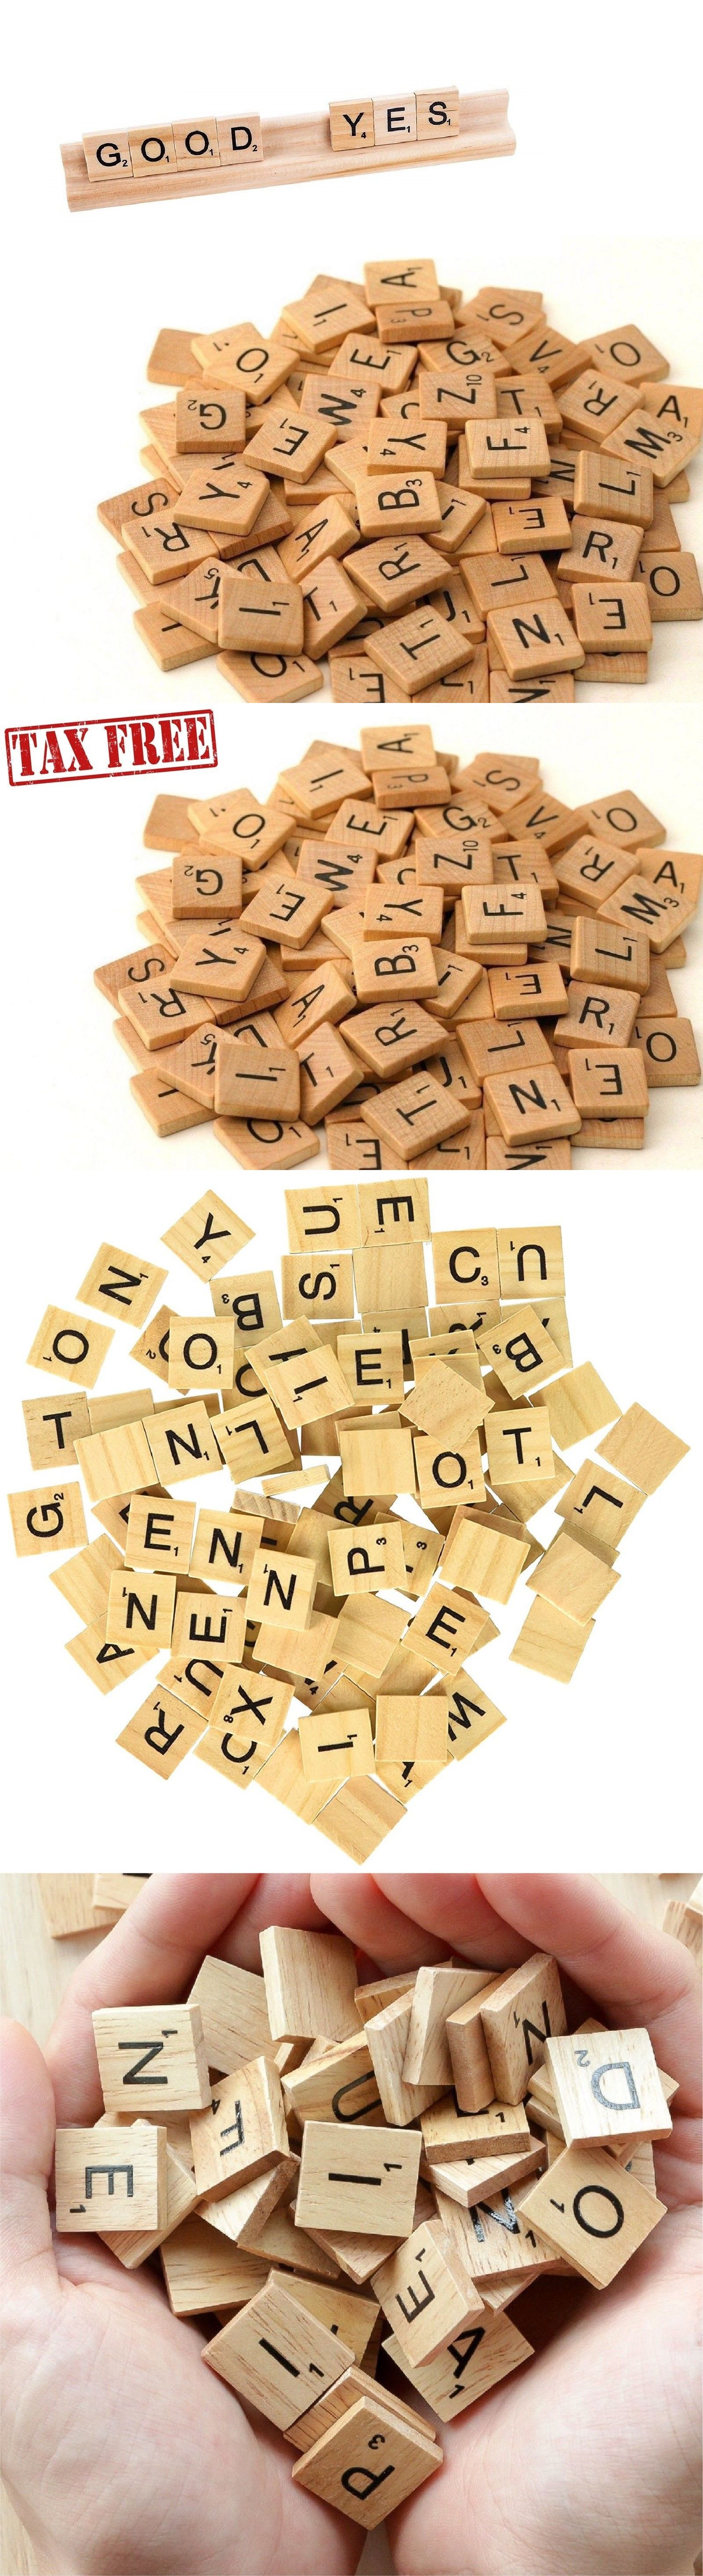 28+ Wooden letter tiles for crafts ideas